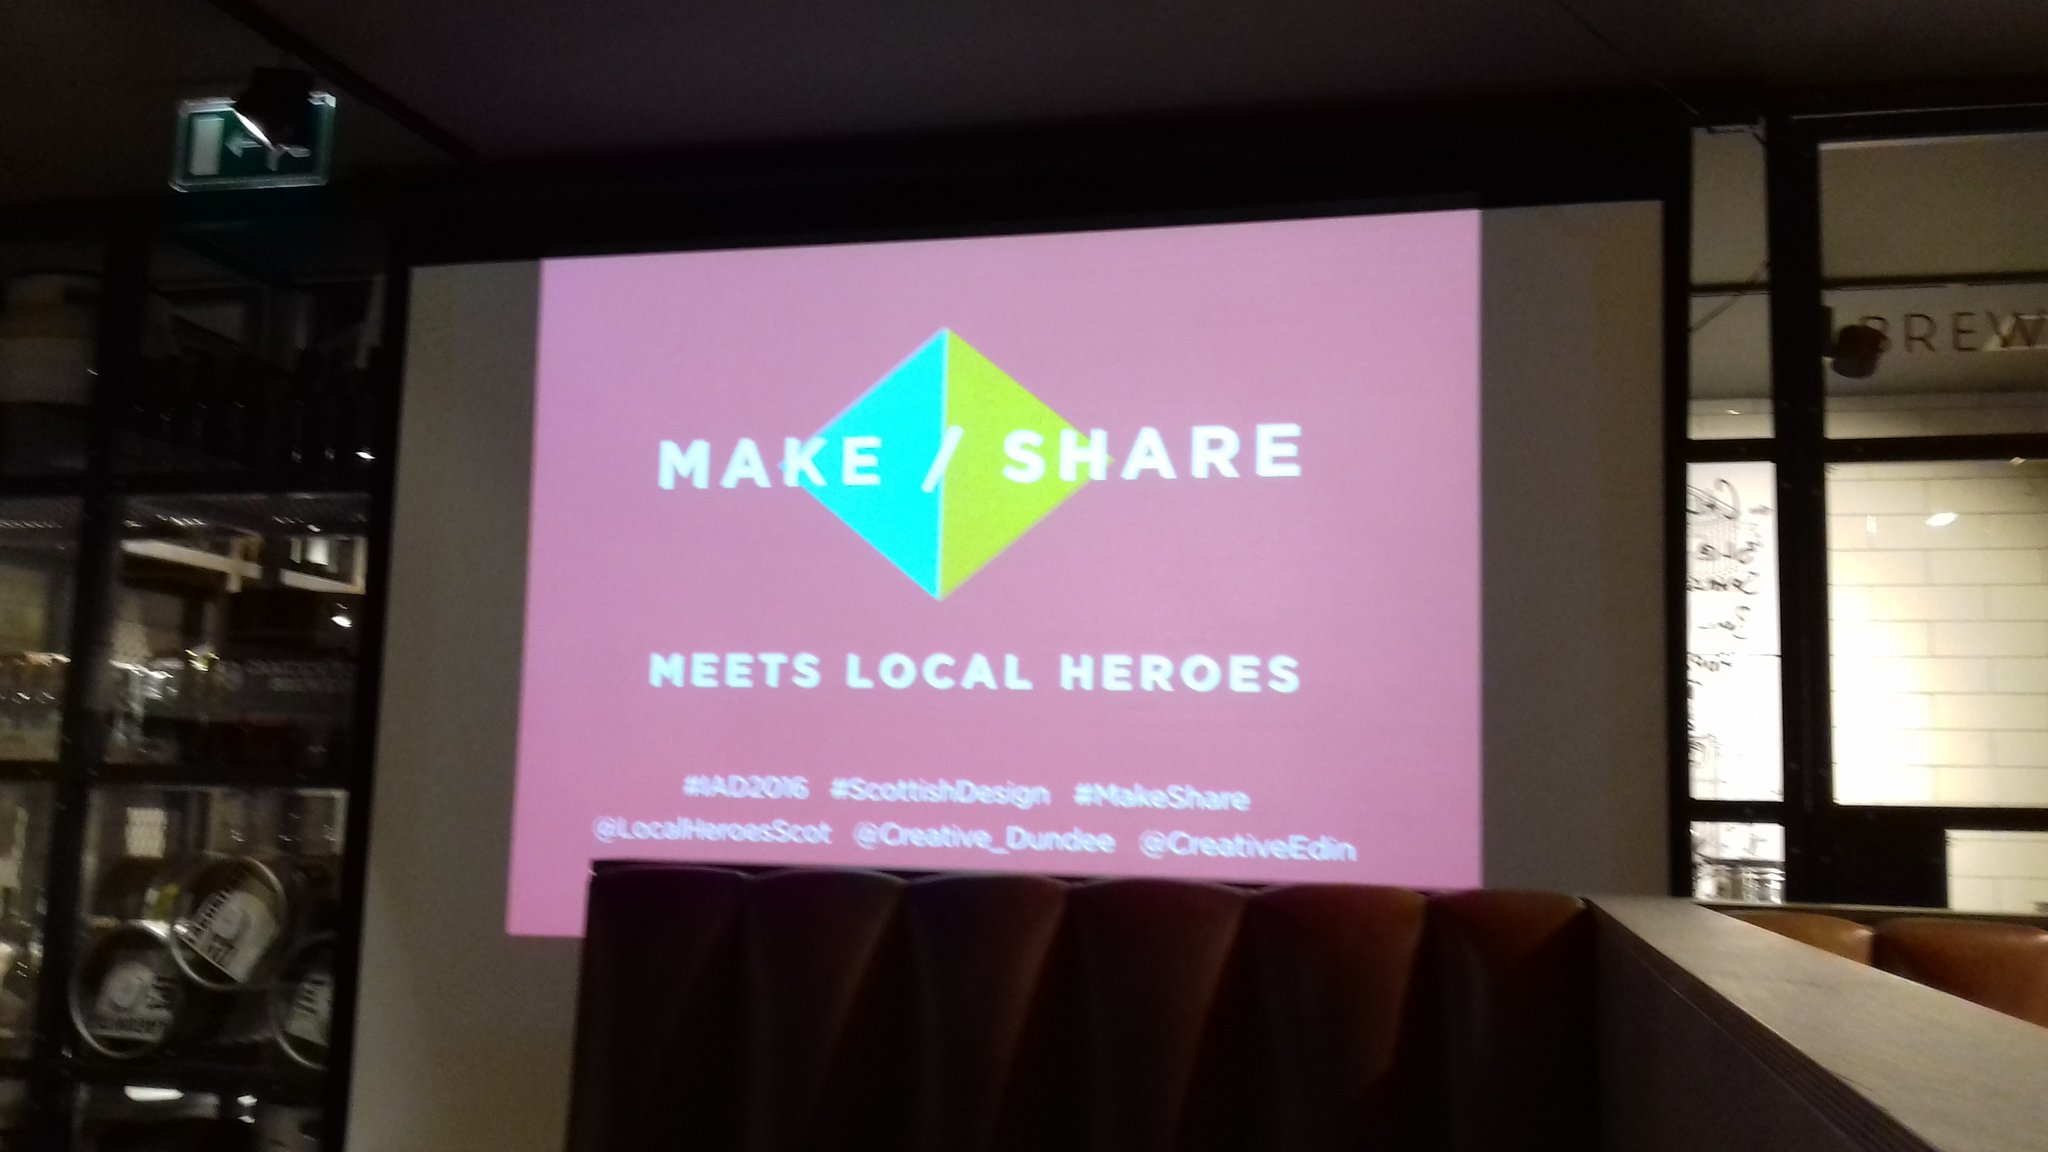 Make/Share was great tonght. Left with some knew designers to research. #makeshare #cbdsn @BeerKitchenDUN https://t.co/OKvWhia5x3